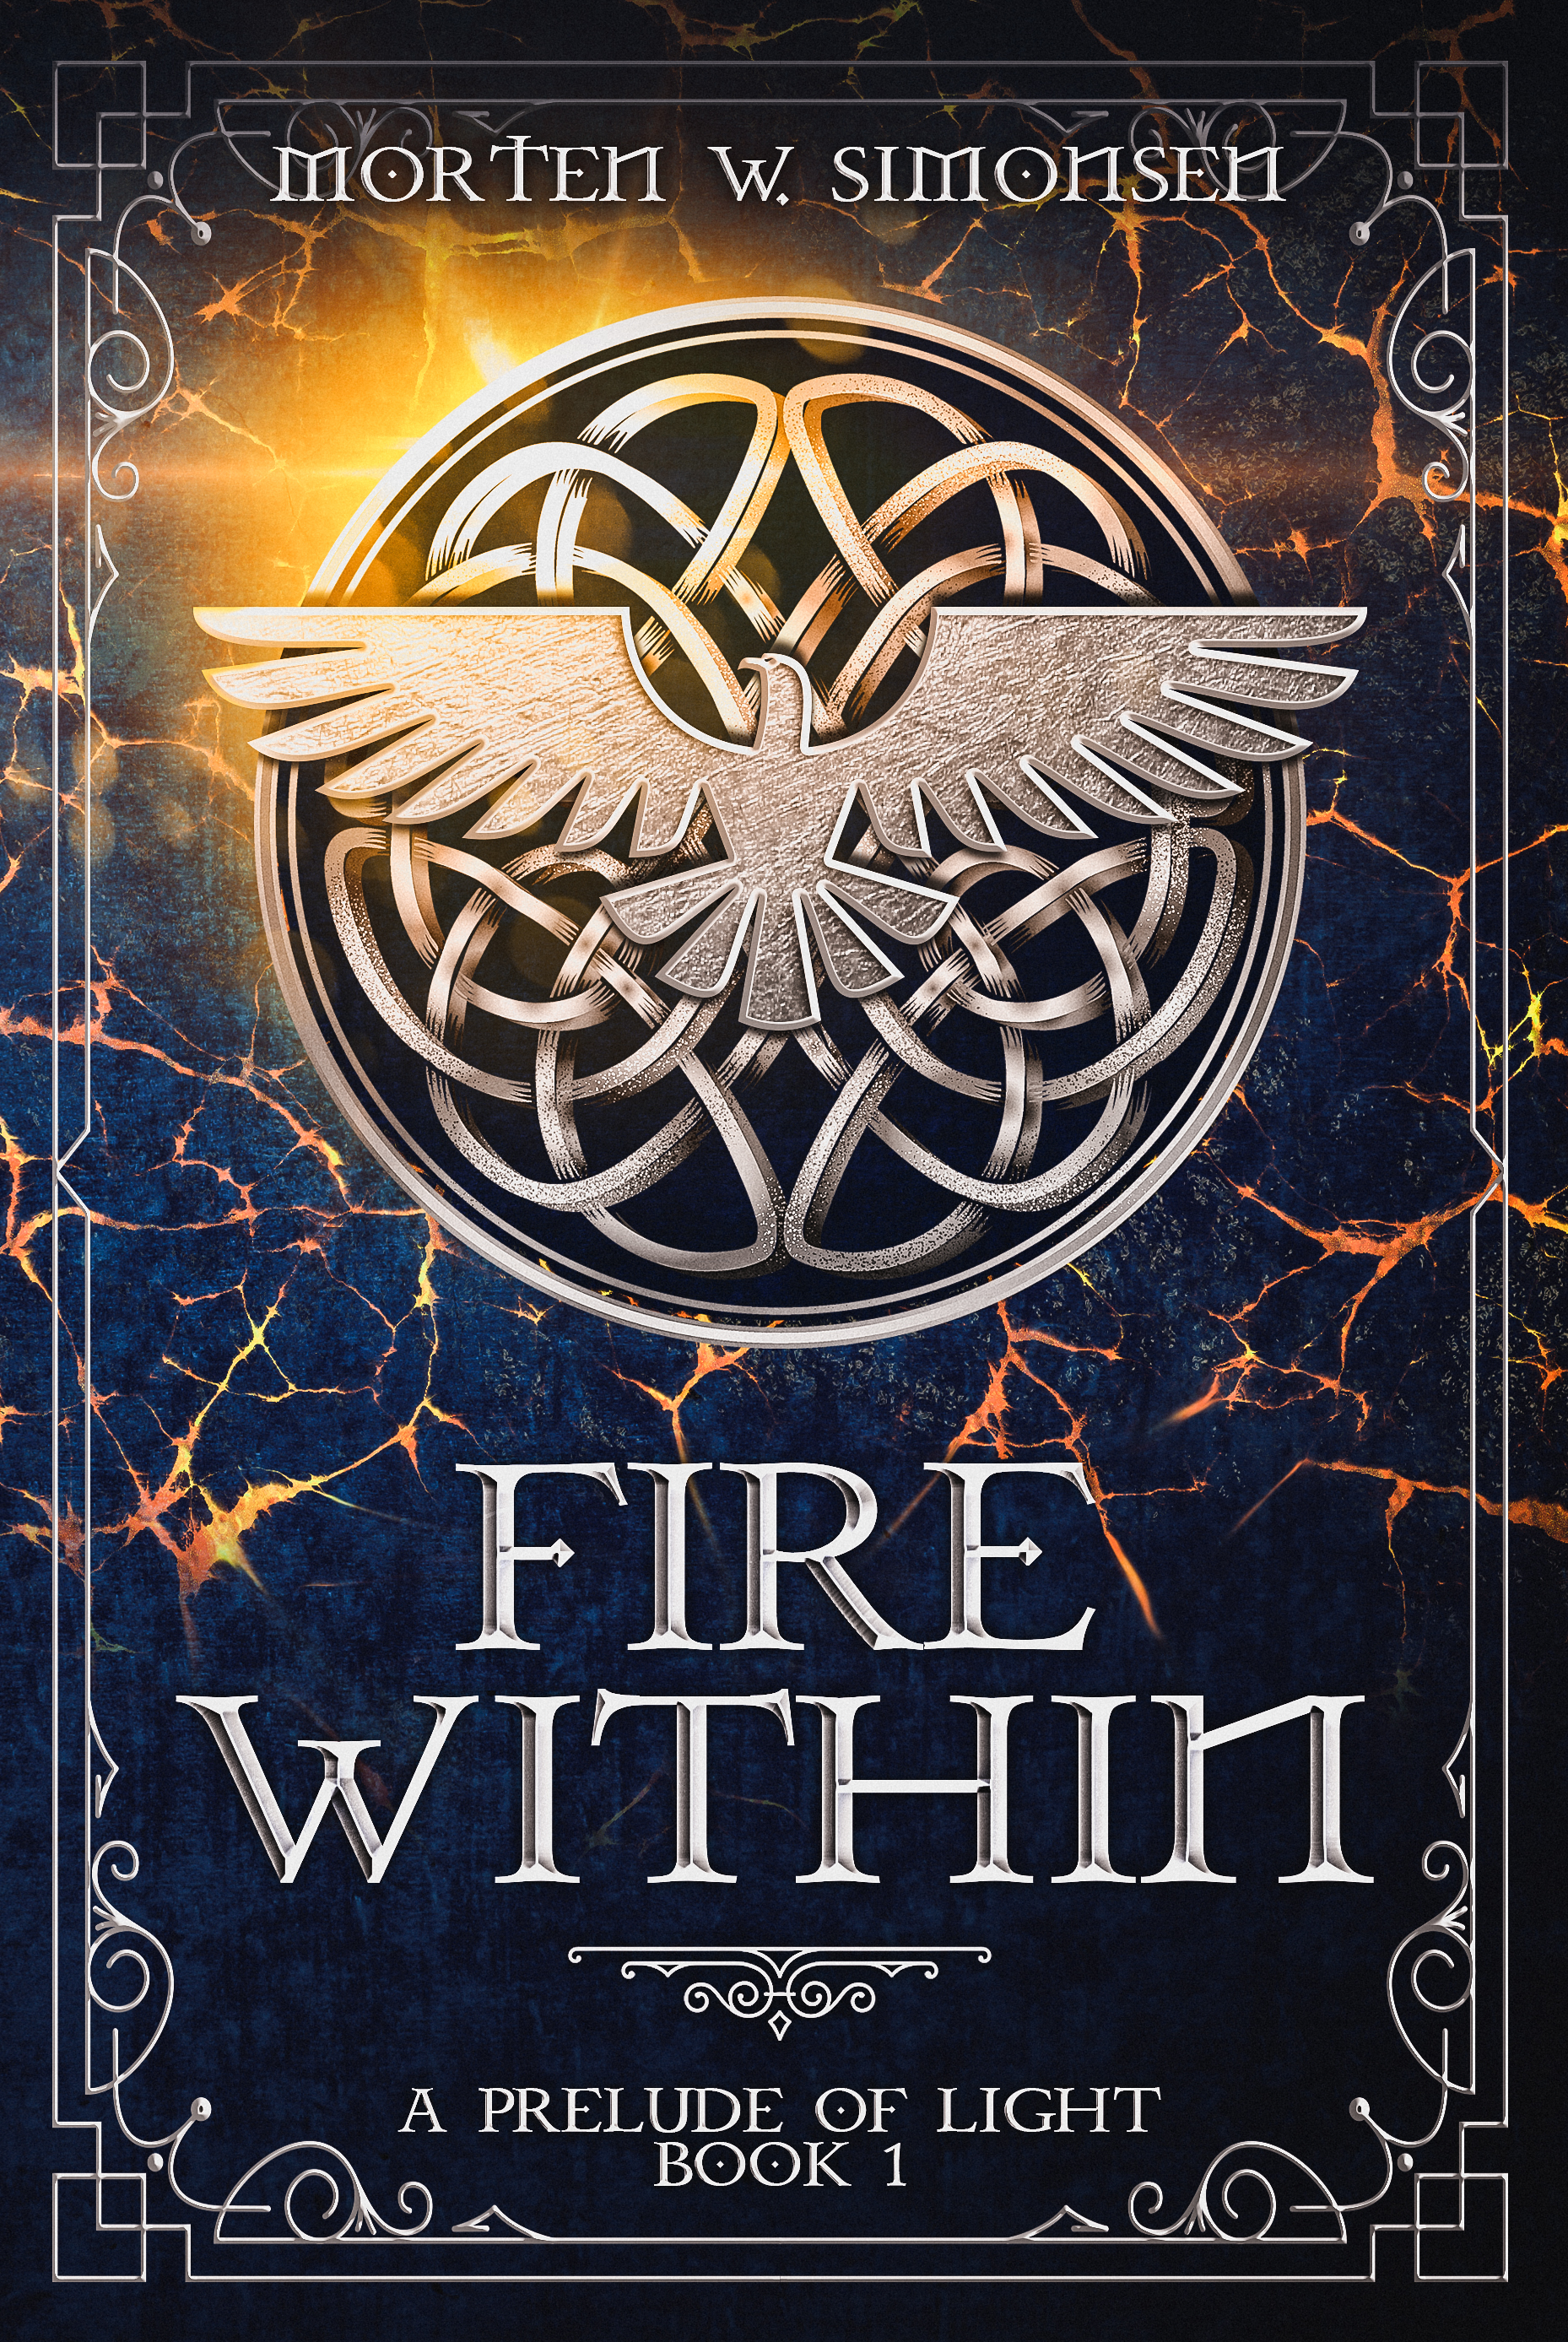 Fire Within, book 1 of A Prelude of Light